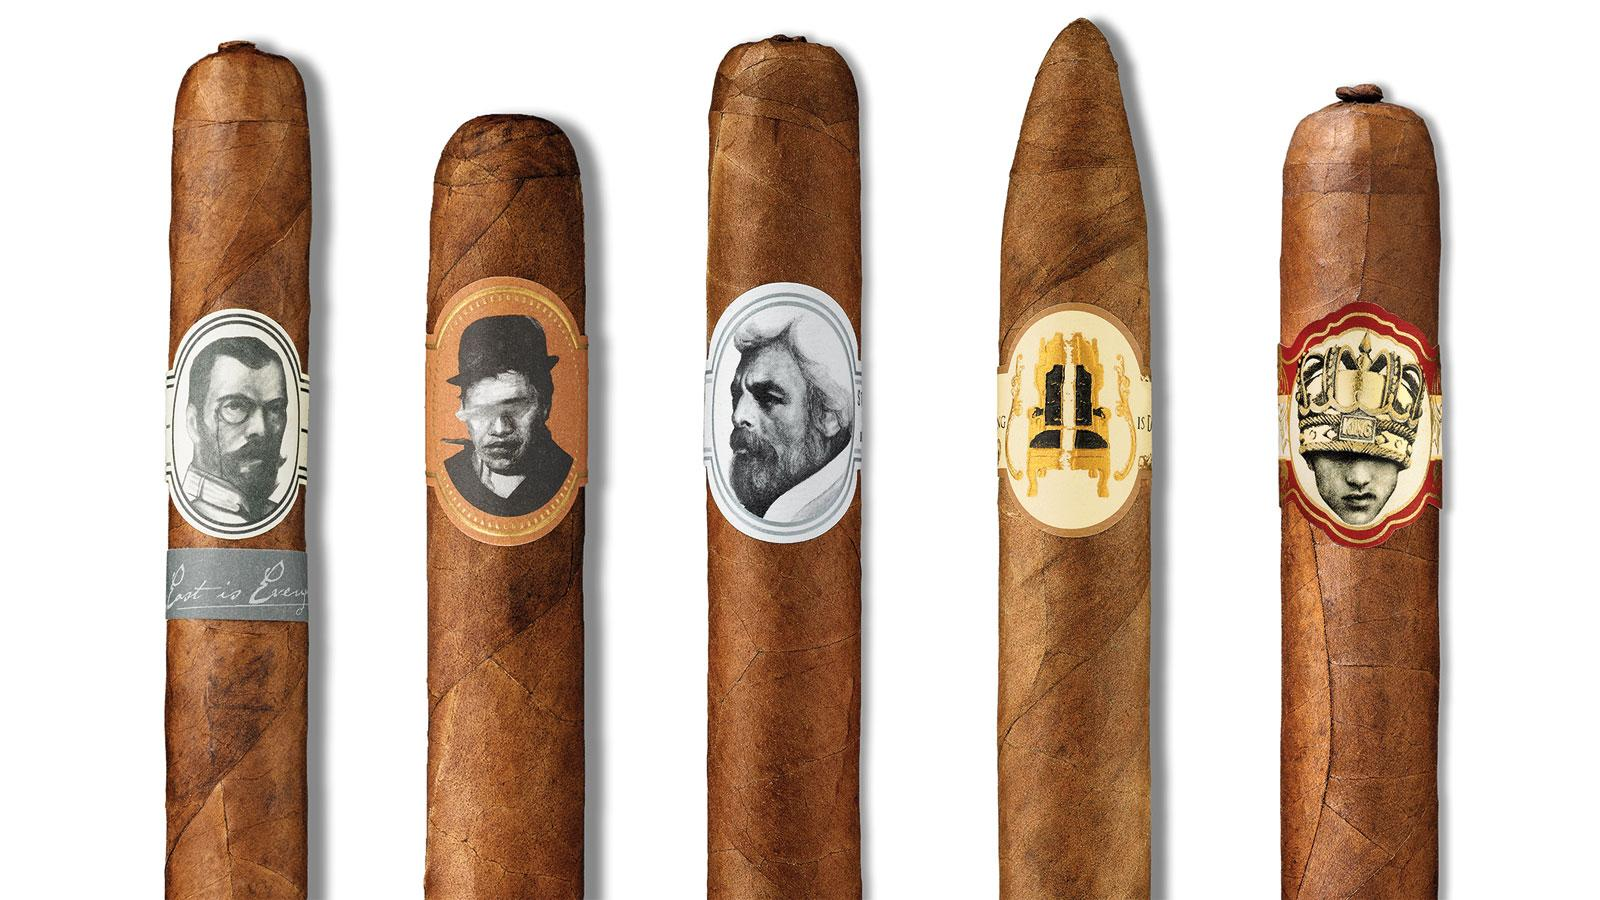 Caldwell Cigar Co.'s portfolio includes brands like The Last Tsar, Blind Man's Bluff, Eastern Standard, The King Is Dead and Long Live The King.